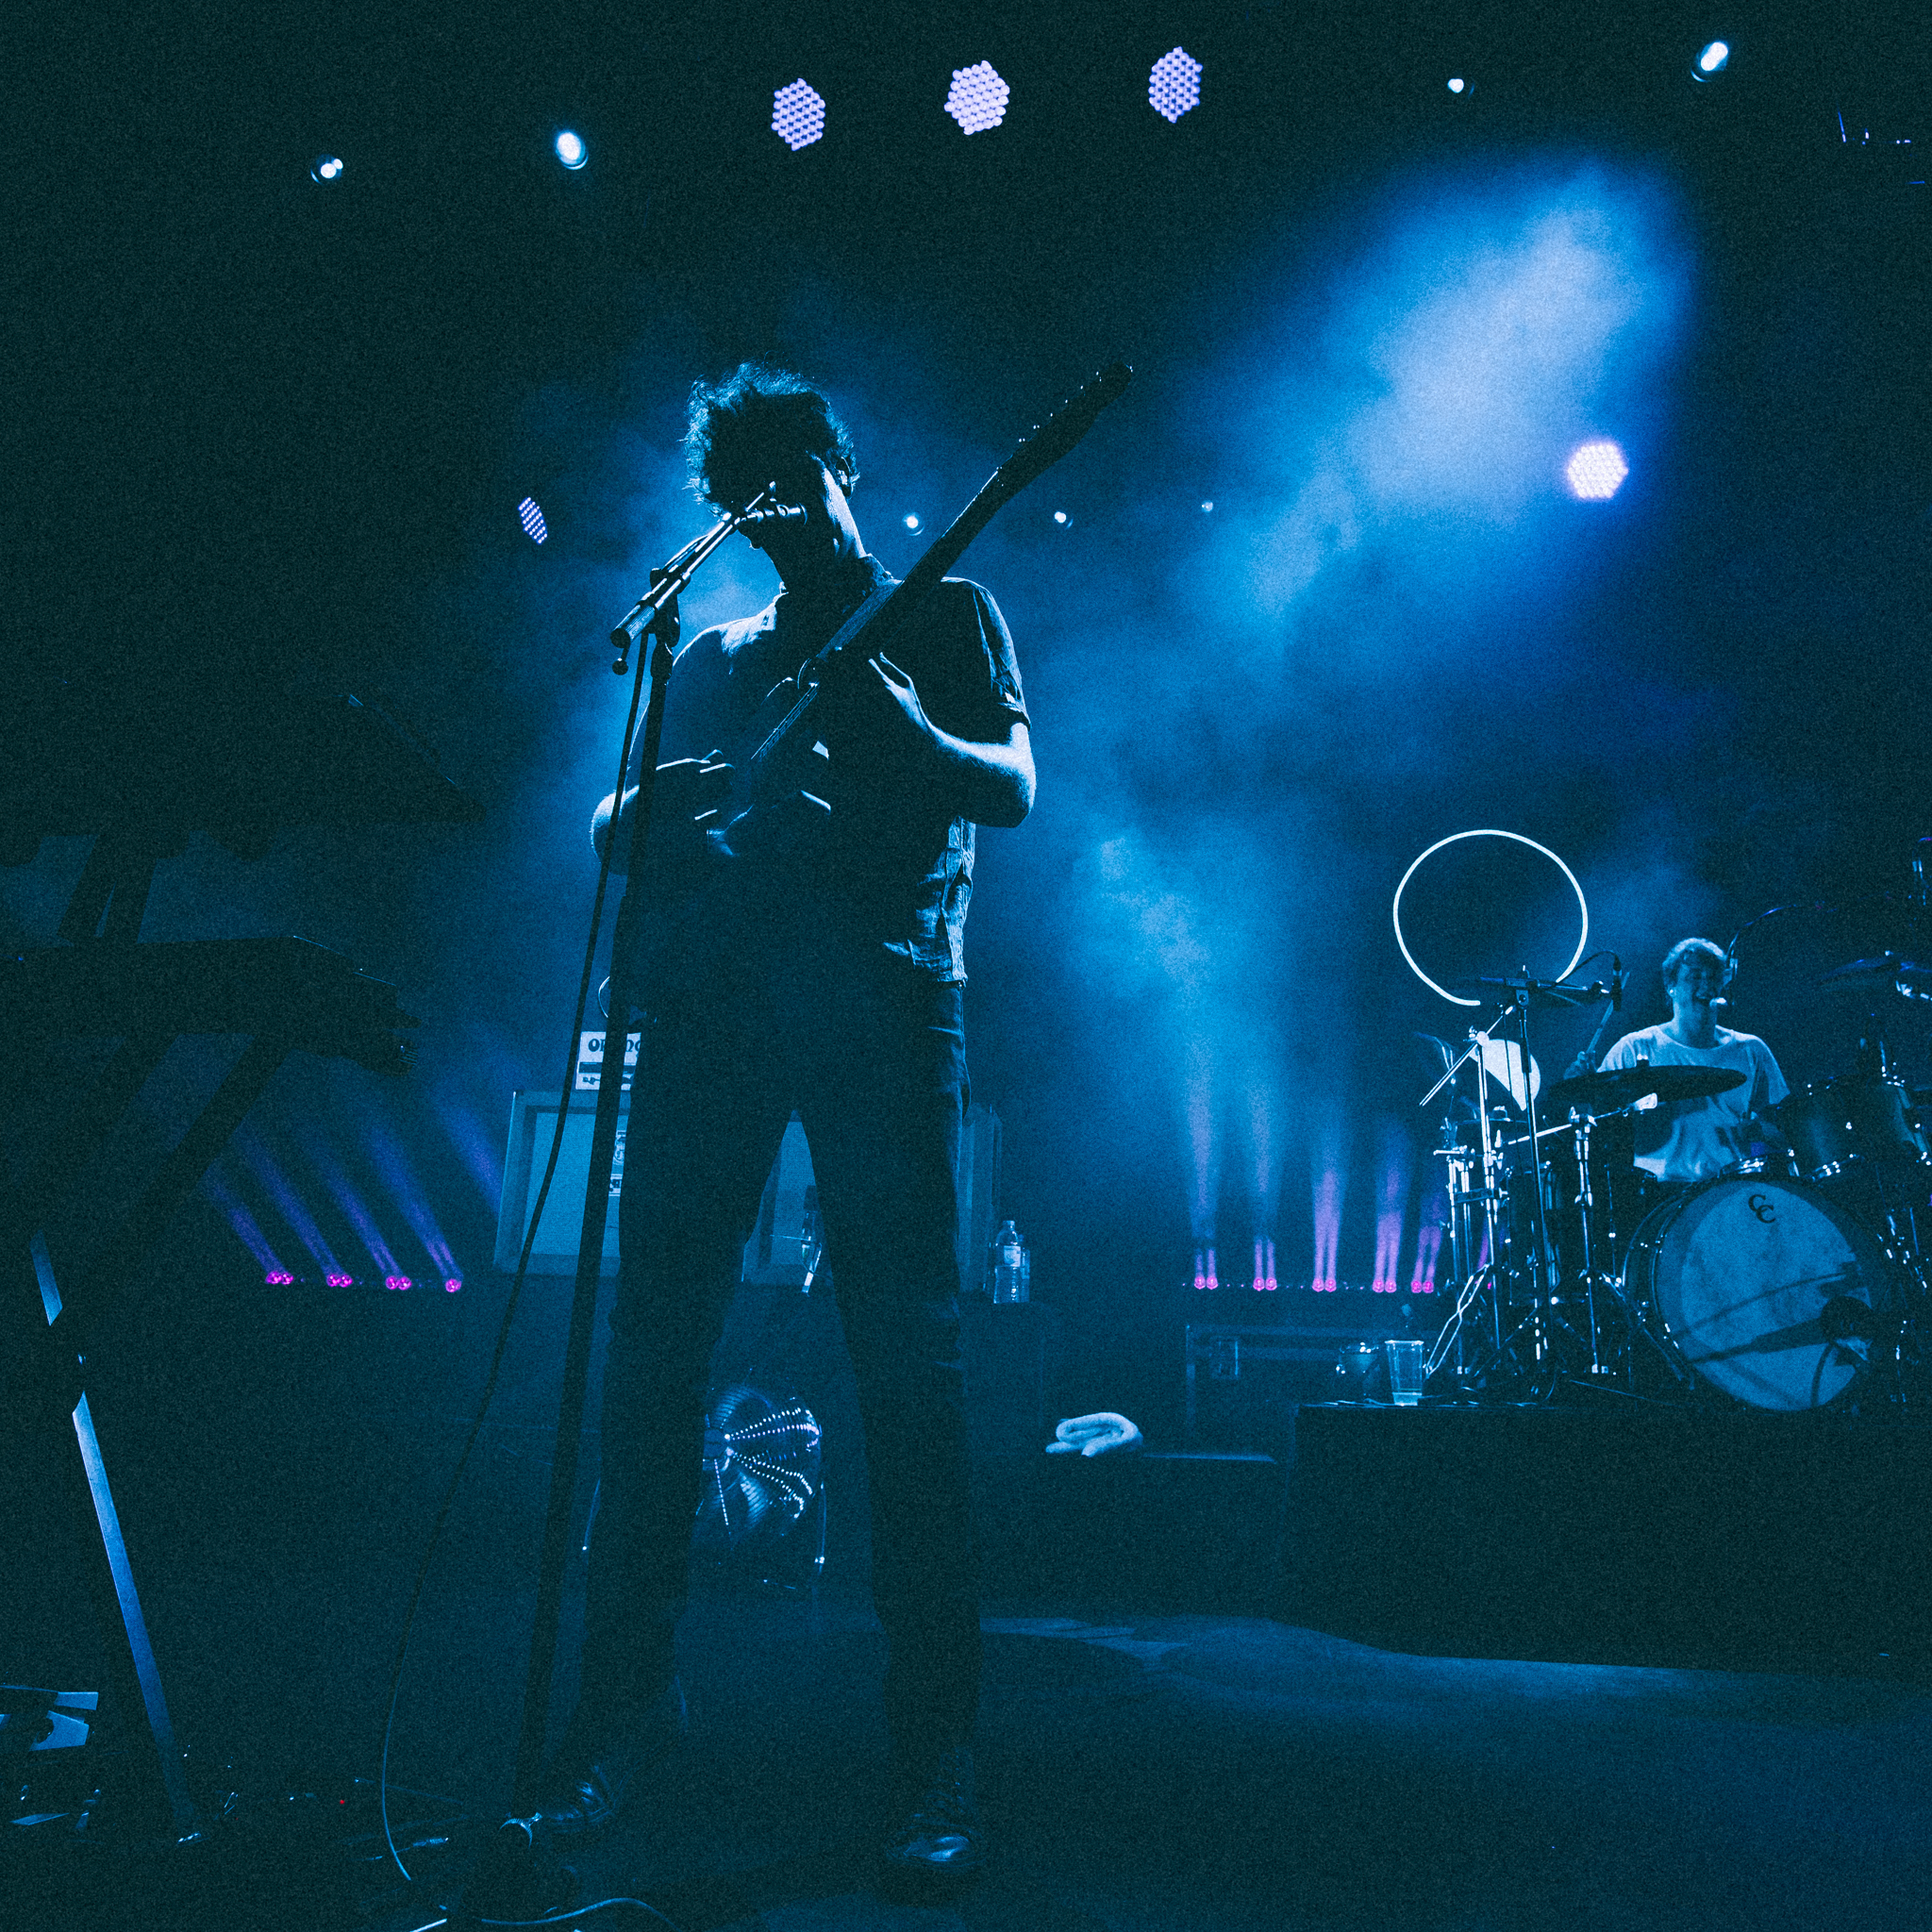 Mitch Lowe Photo - The Wombats - Riverstage-163.jpg